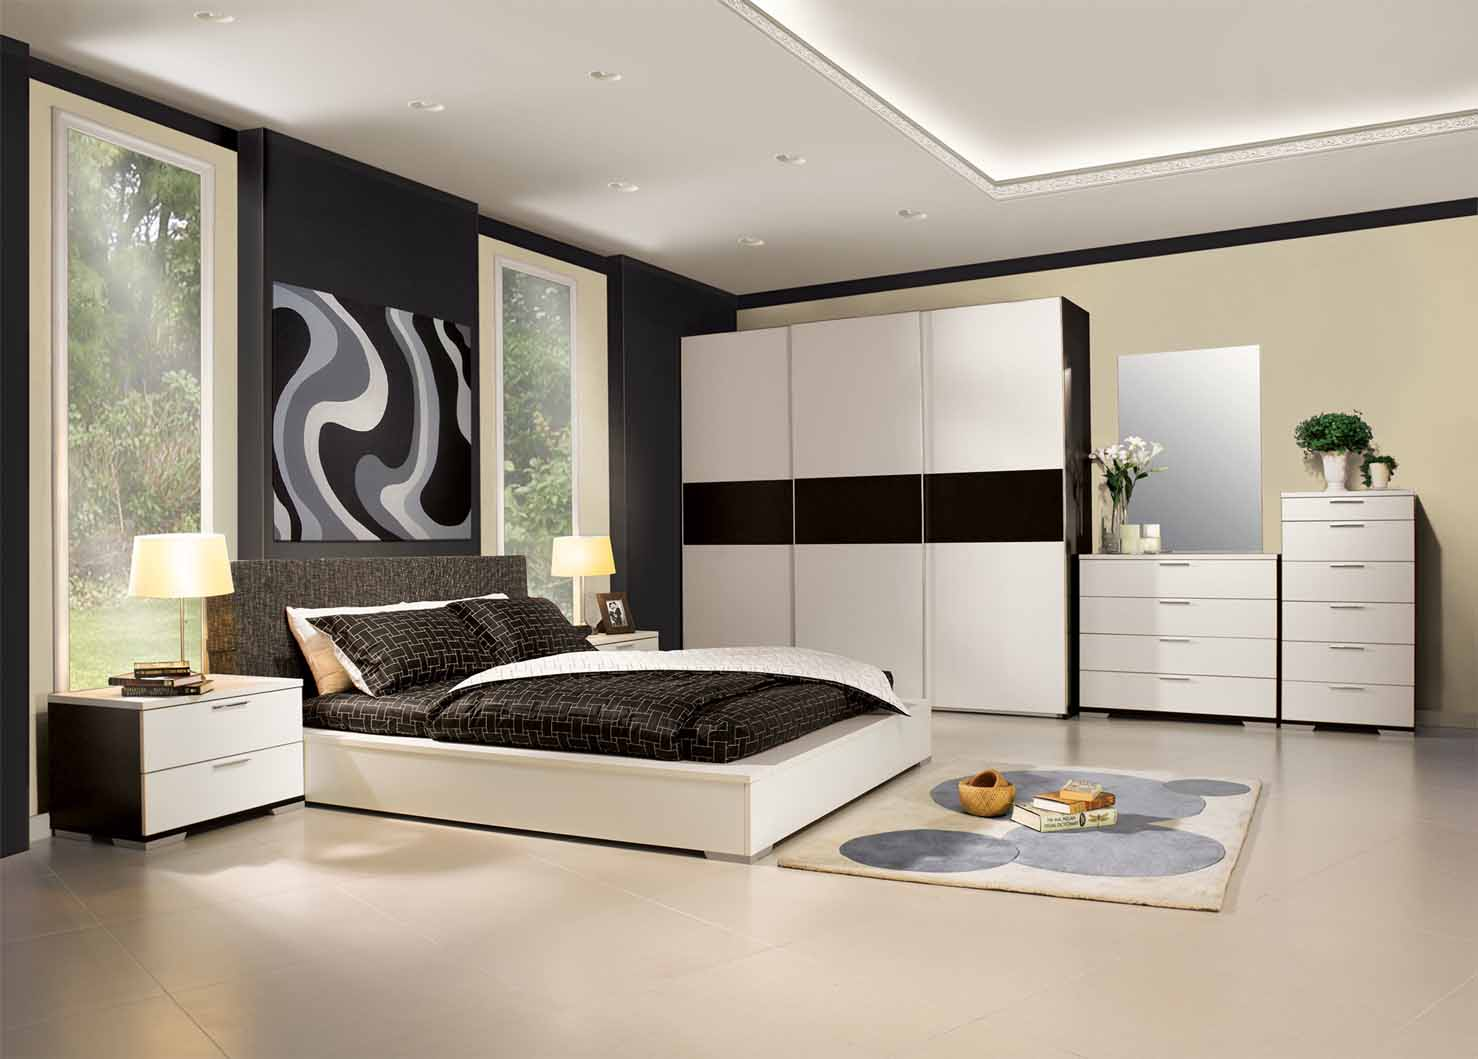 Modern bedroom design fouadtalal Home design ideas for bedrooms